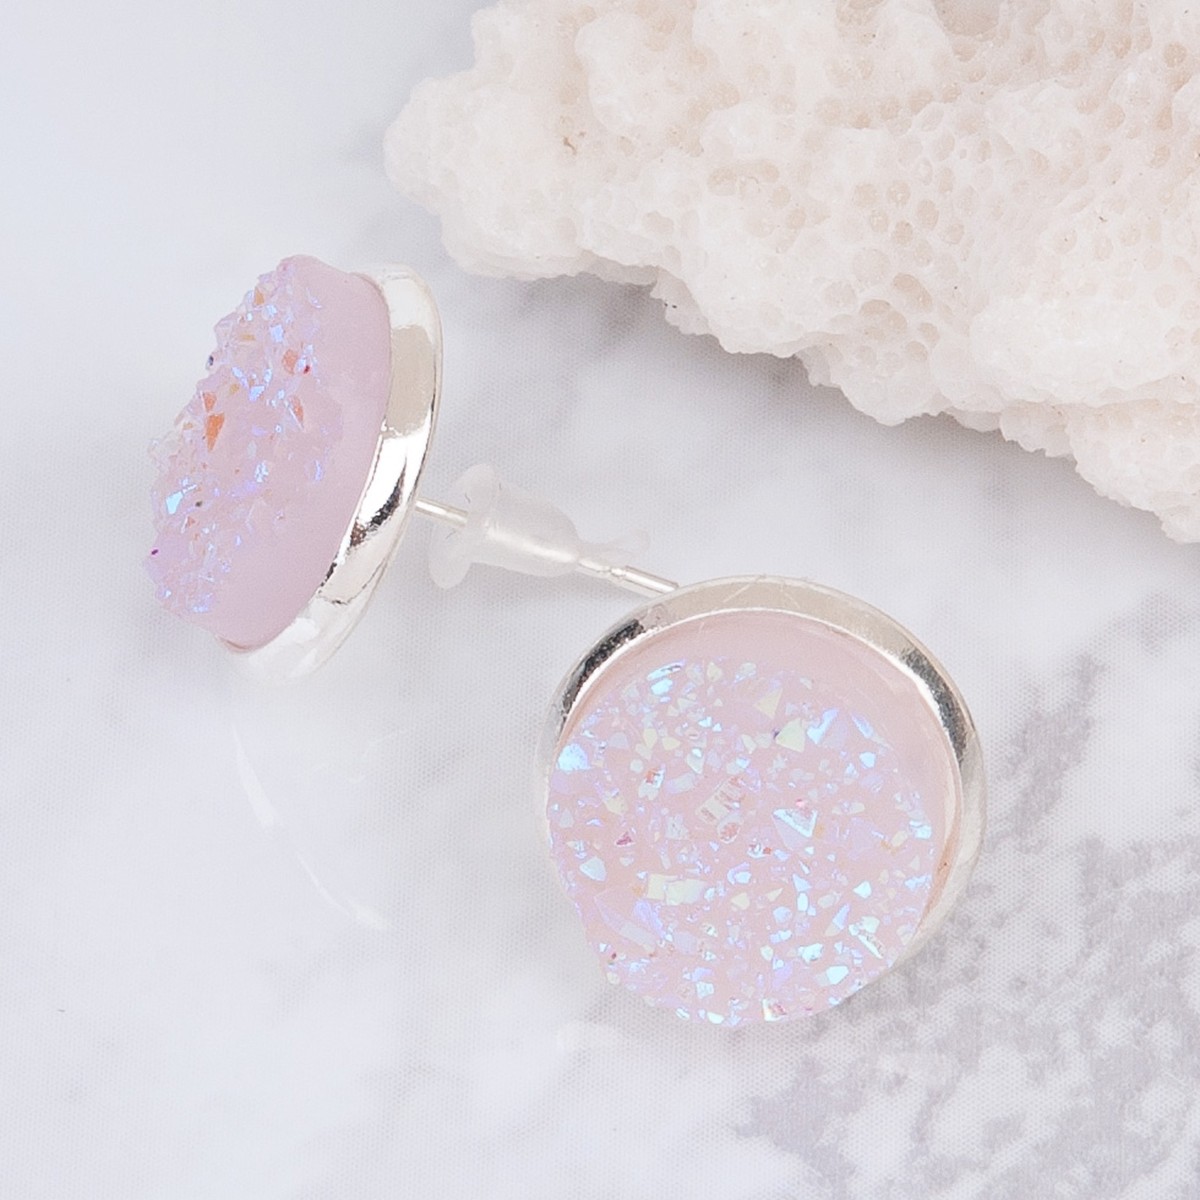 8Seasons Copper Post Stud Earrings Round Silver color Light Pink AB Color W/ Stoppers Fashion Jewelry 16mm x 14mm 2017 new